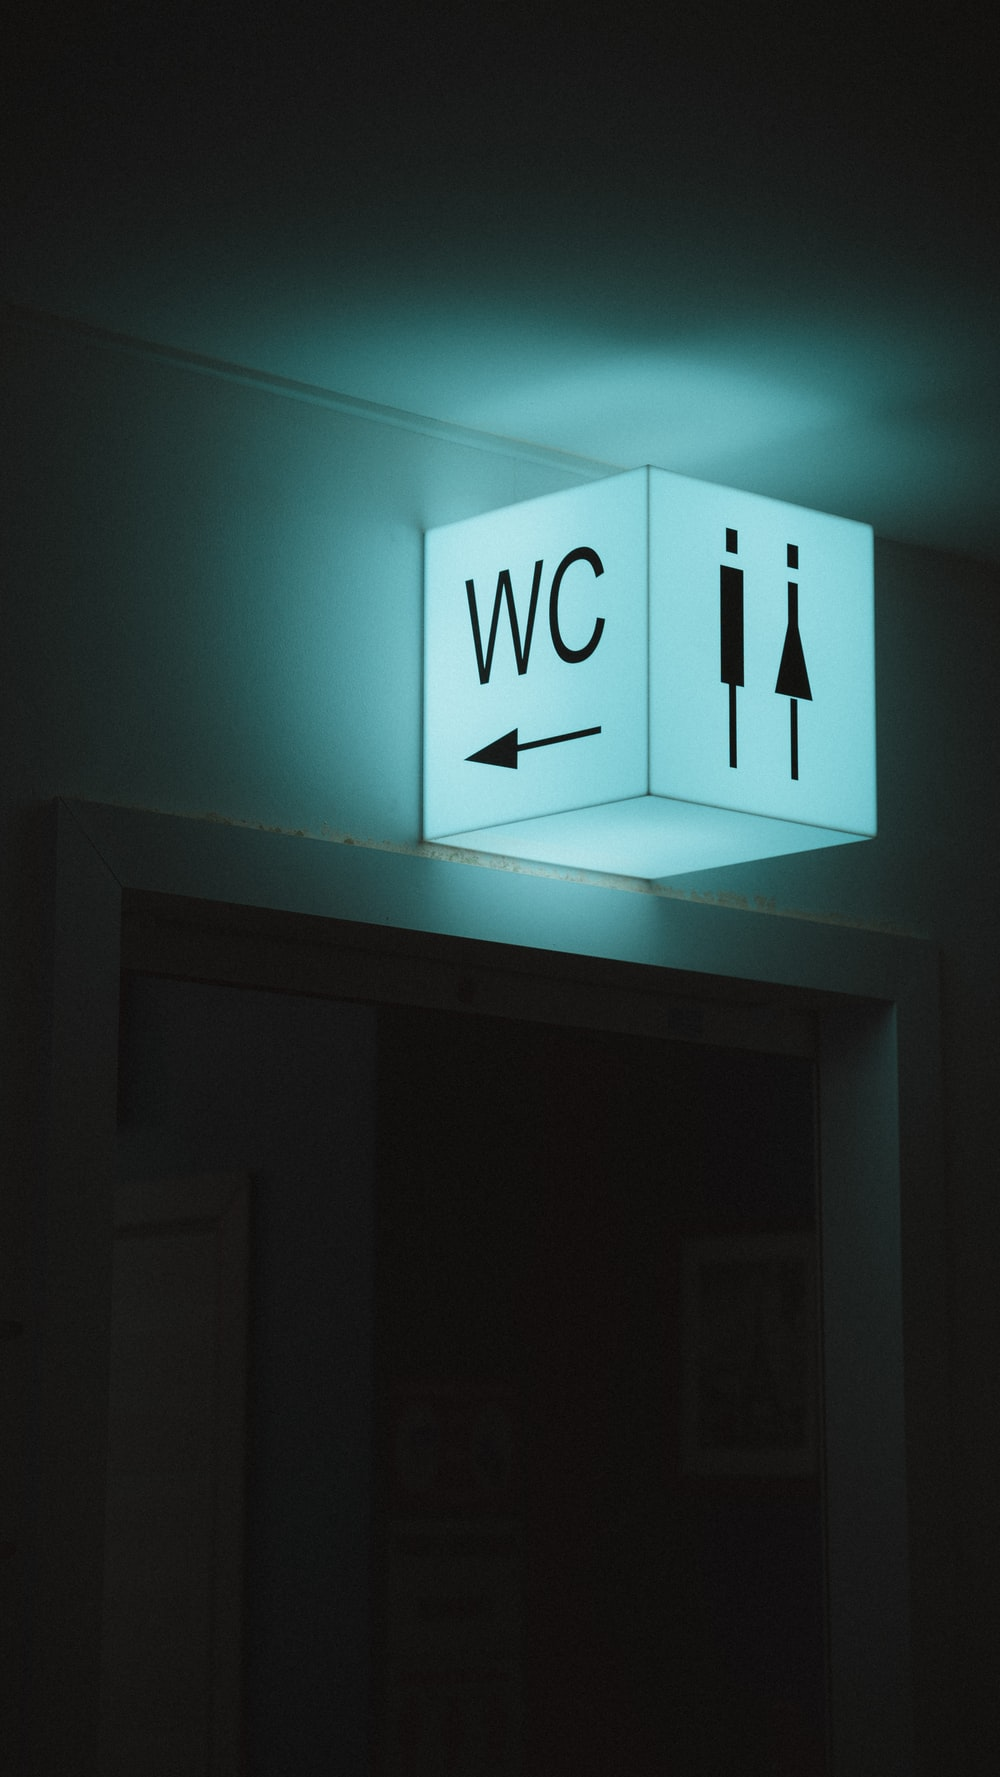 white and blue wall mounted exit sign